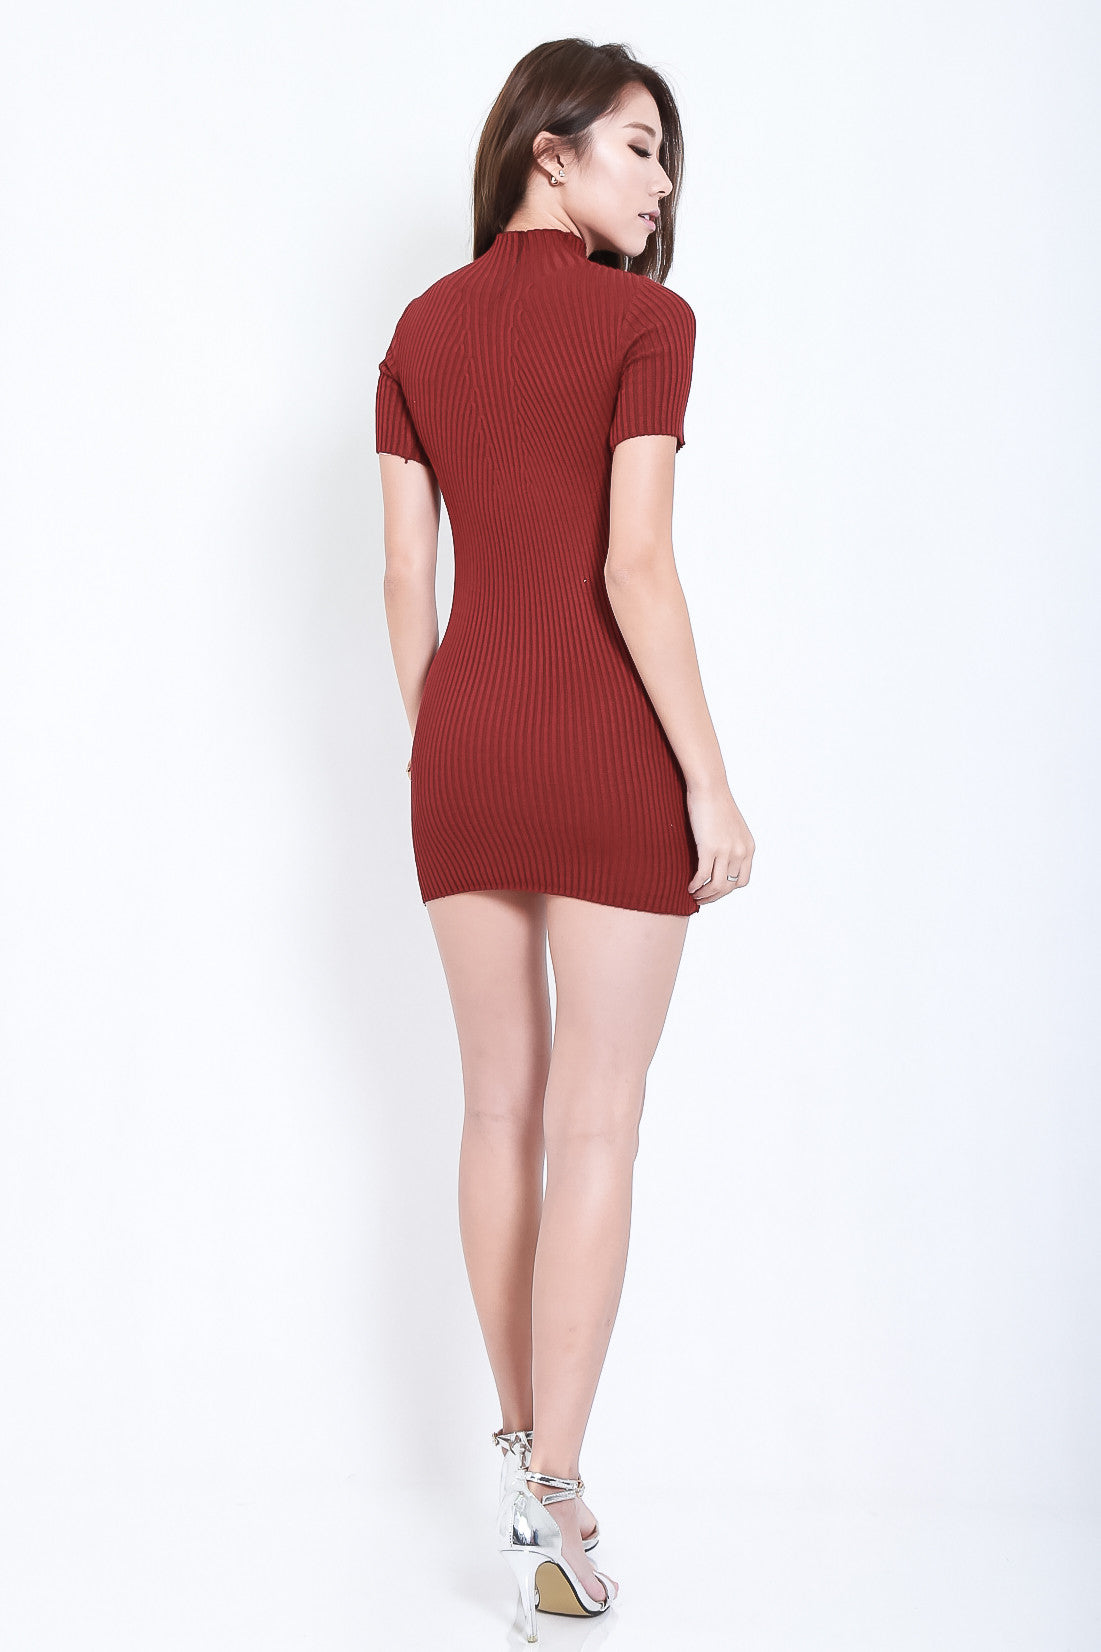 TAKE ME HIGHER RIBBED KNIT DRESS IN WINE